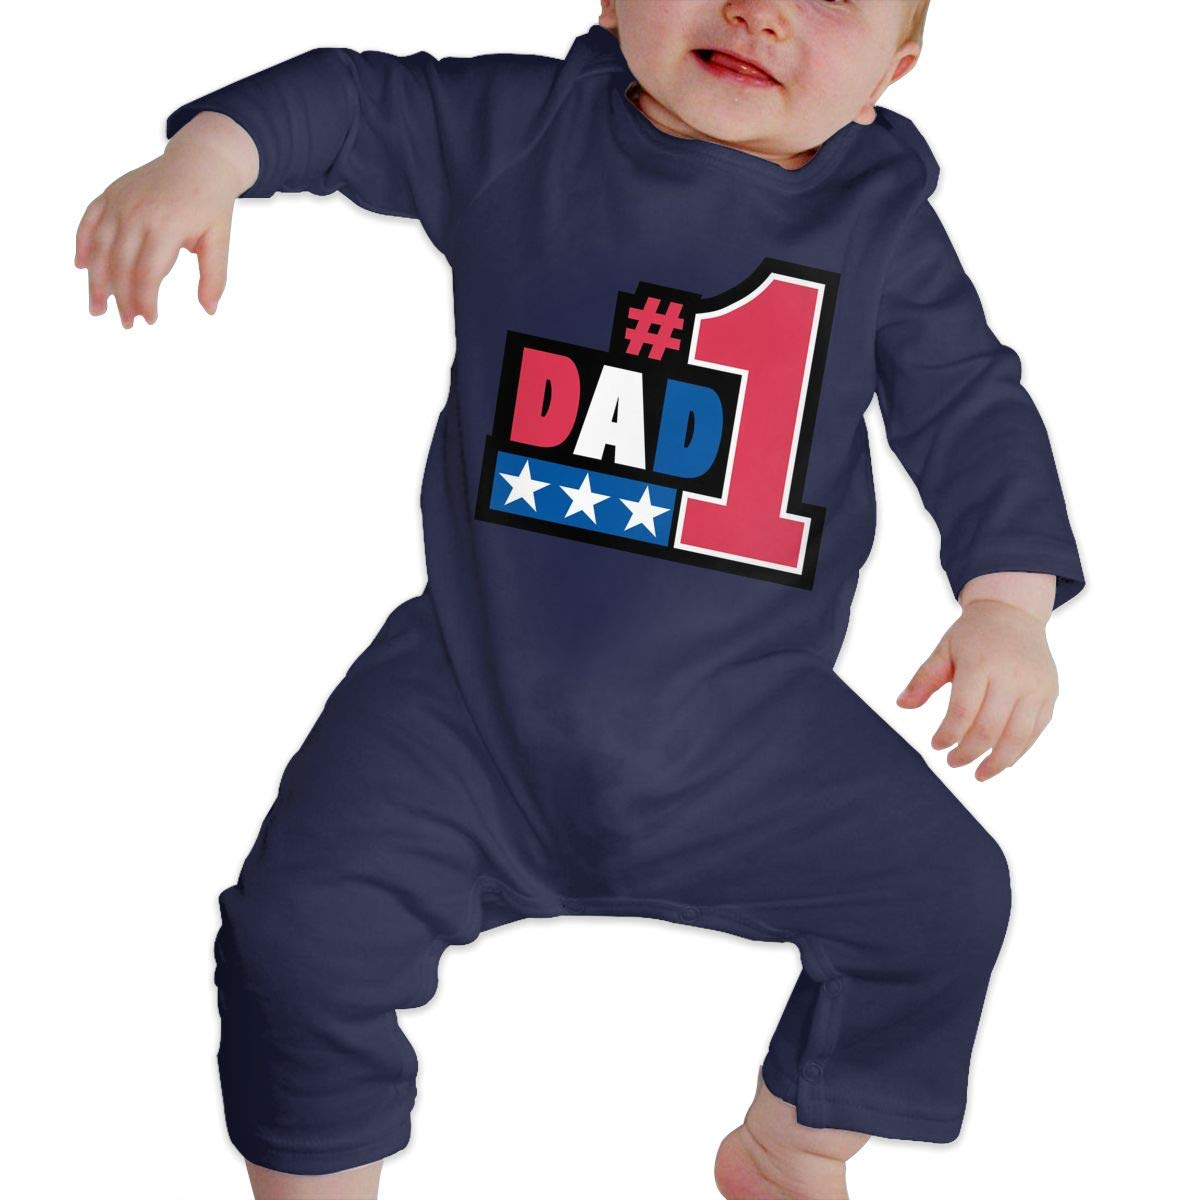 Baby Boy Girl O-Neck Long Sleeve Solid Color Onesie #1Dad Crawling Clothes